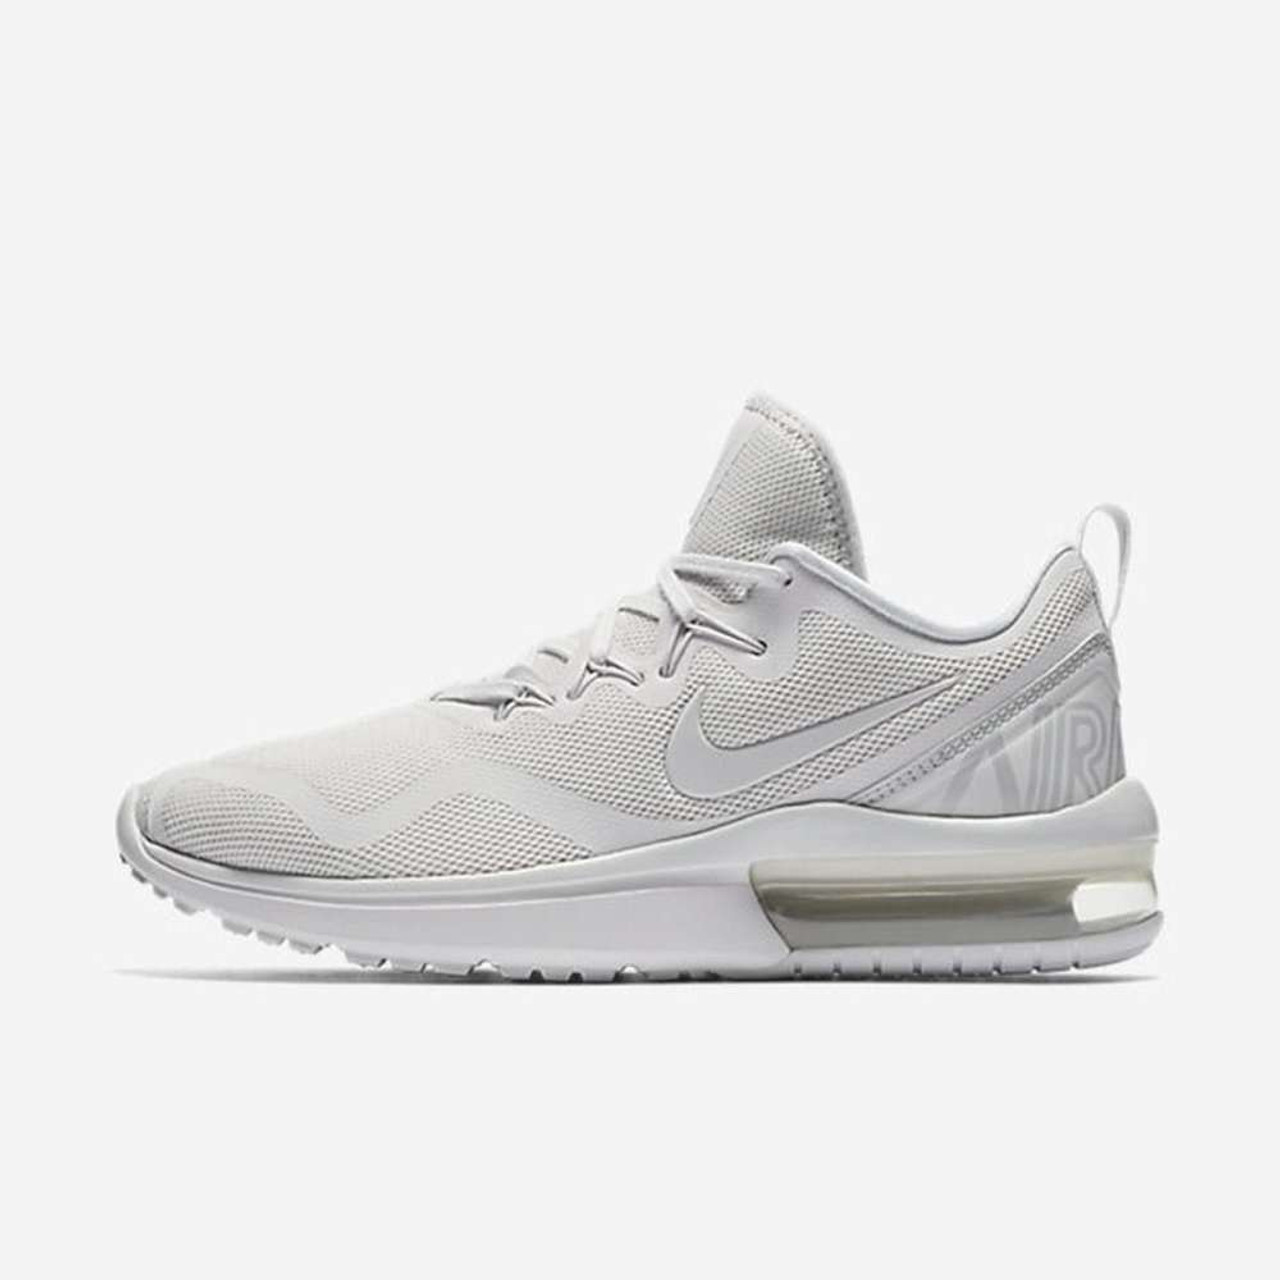 nouveau style a35e3 5c5a3 Nike Mens Nike Air Max Fury Fabric Low Top Lace Up Running  Sneaker~pp-e8ca8384